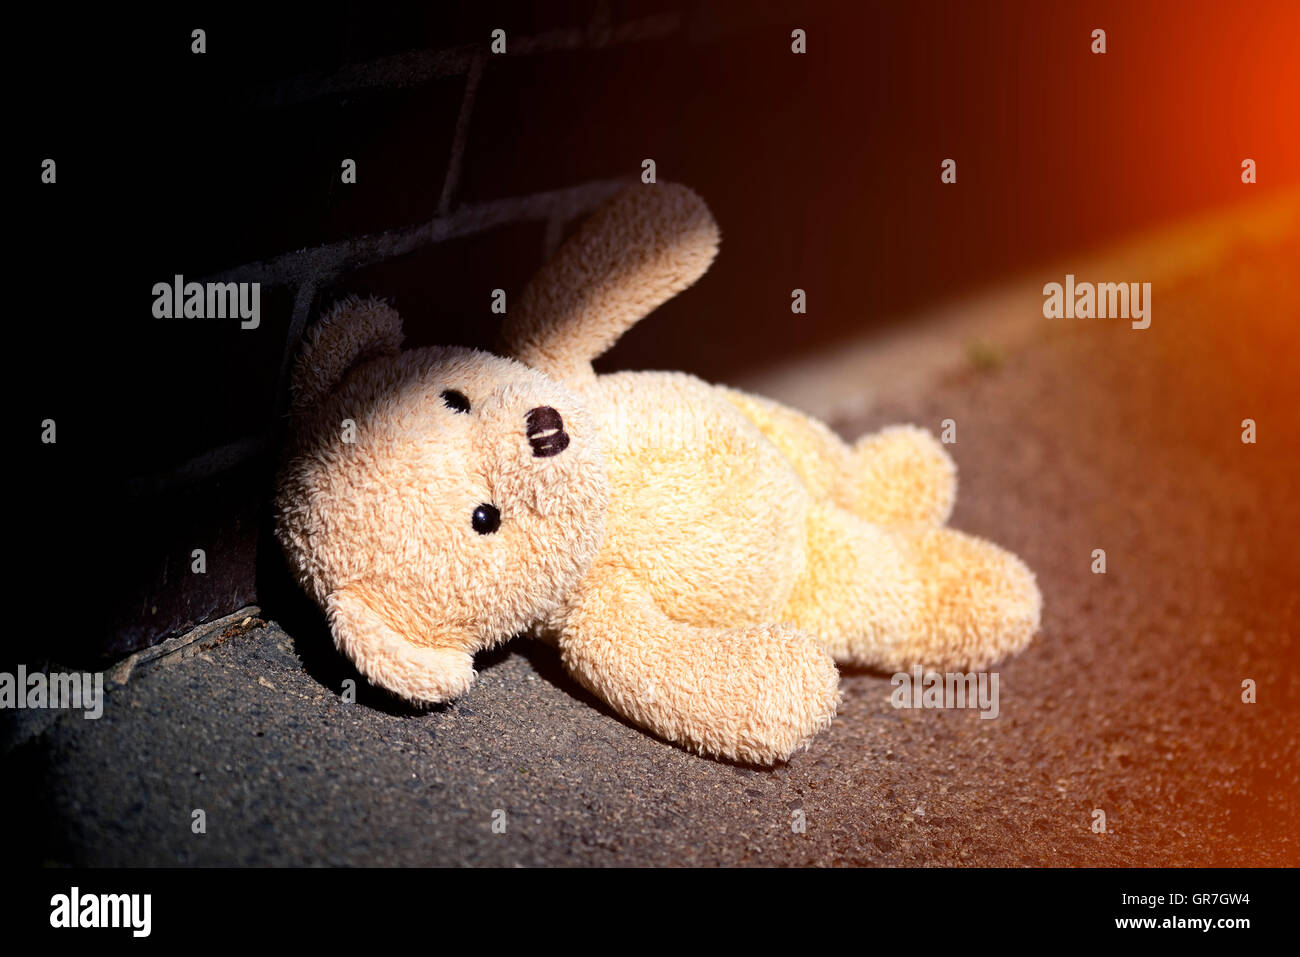 Teddy Bear On The Ground, Childhood Trauma - Stock Image